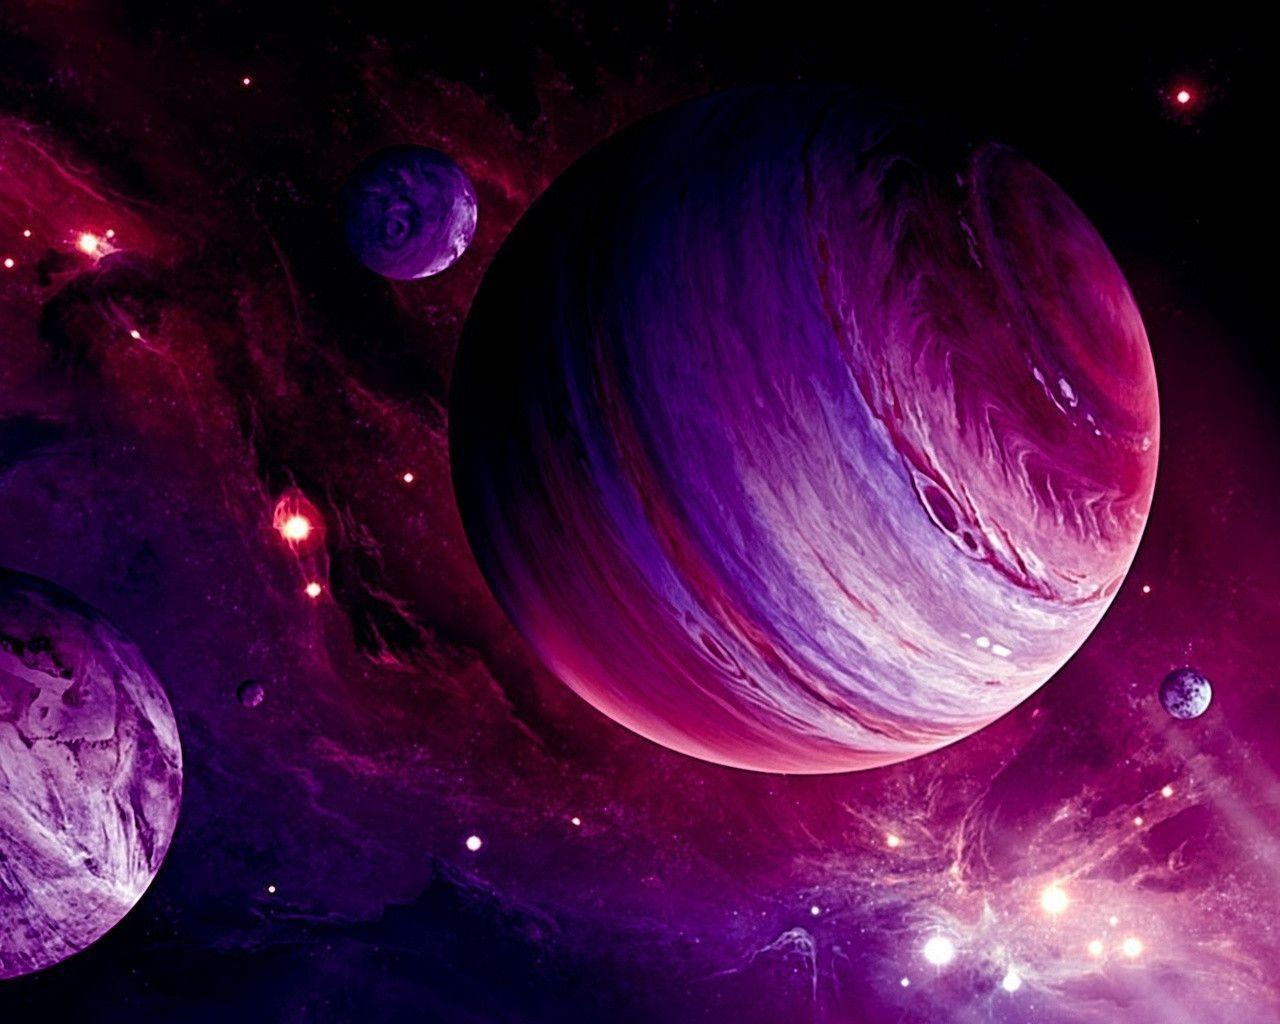 pink planet images - HD 1280×1024